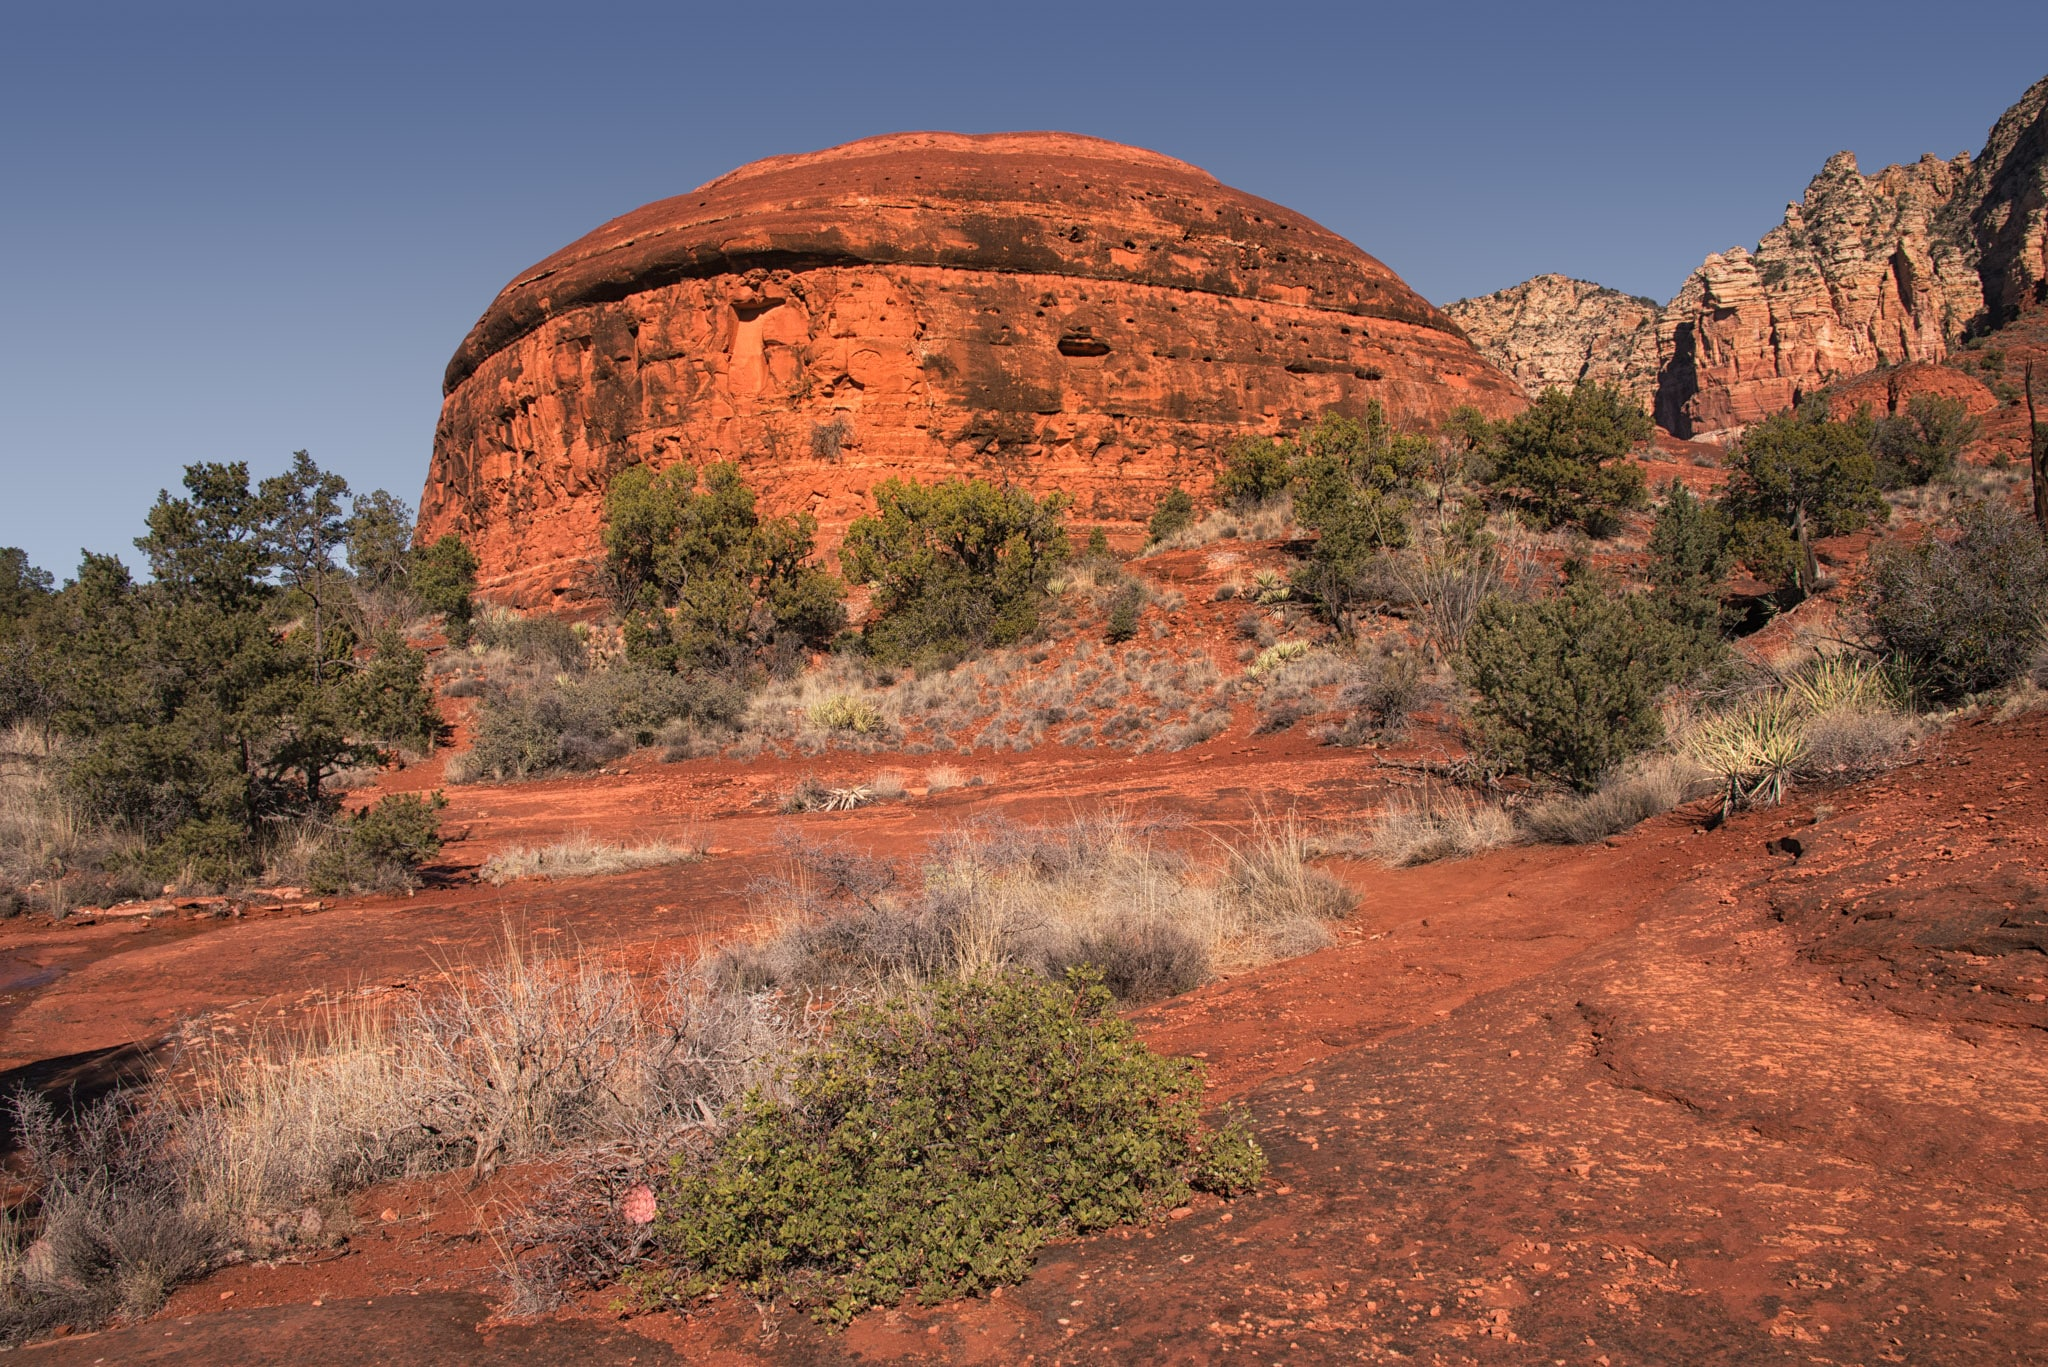 A dome-shaped rock formation seen on the Bell Rock Trail in Sedona, Arizona.